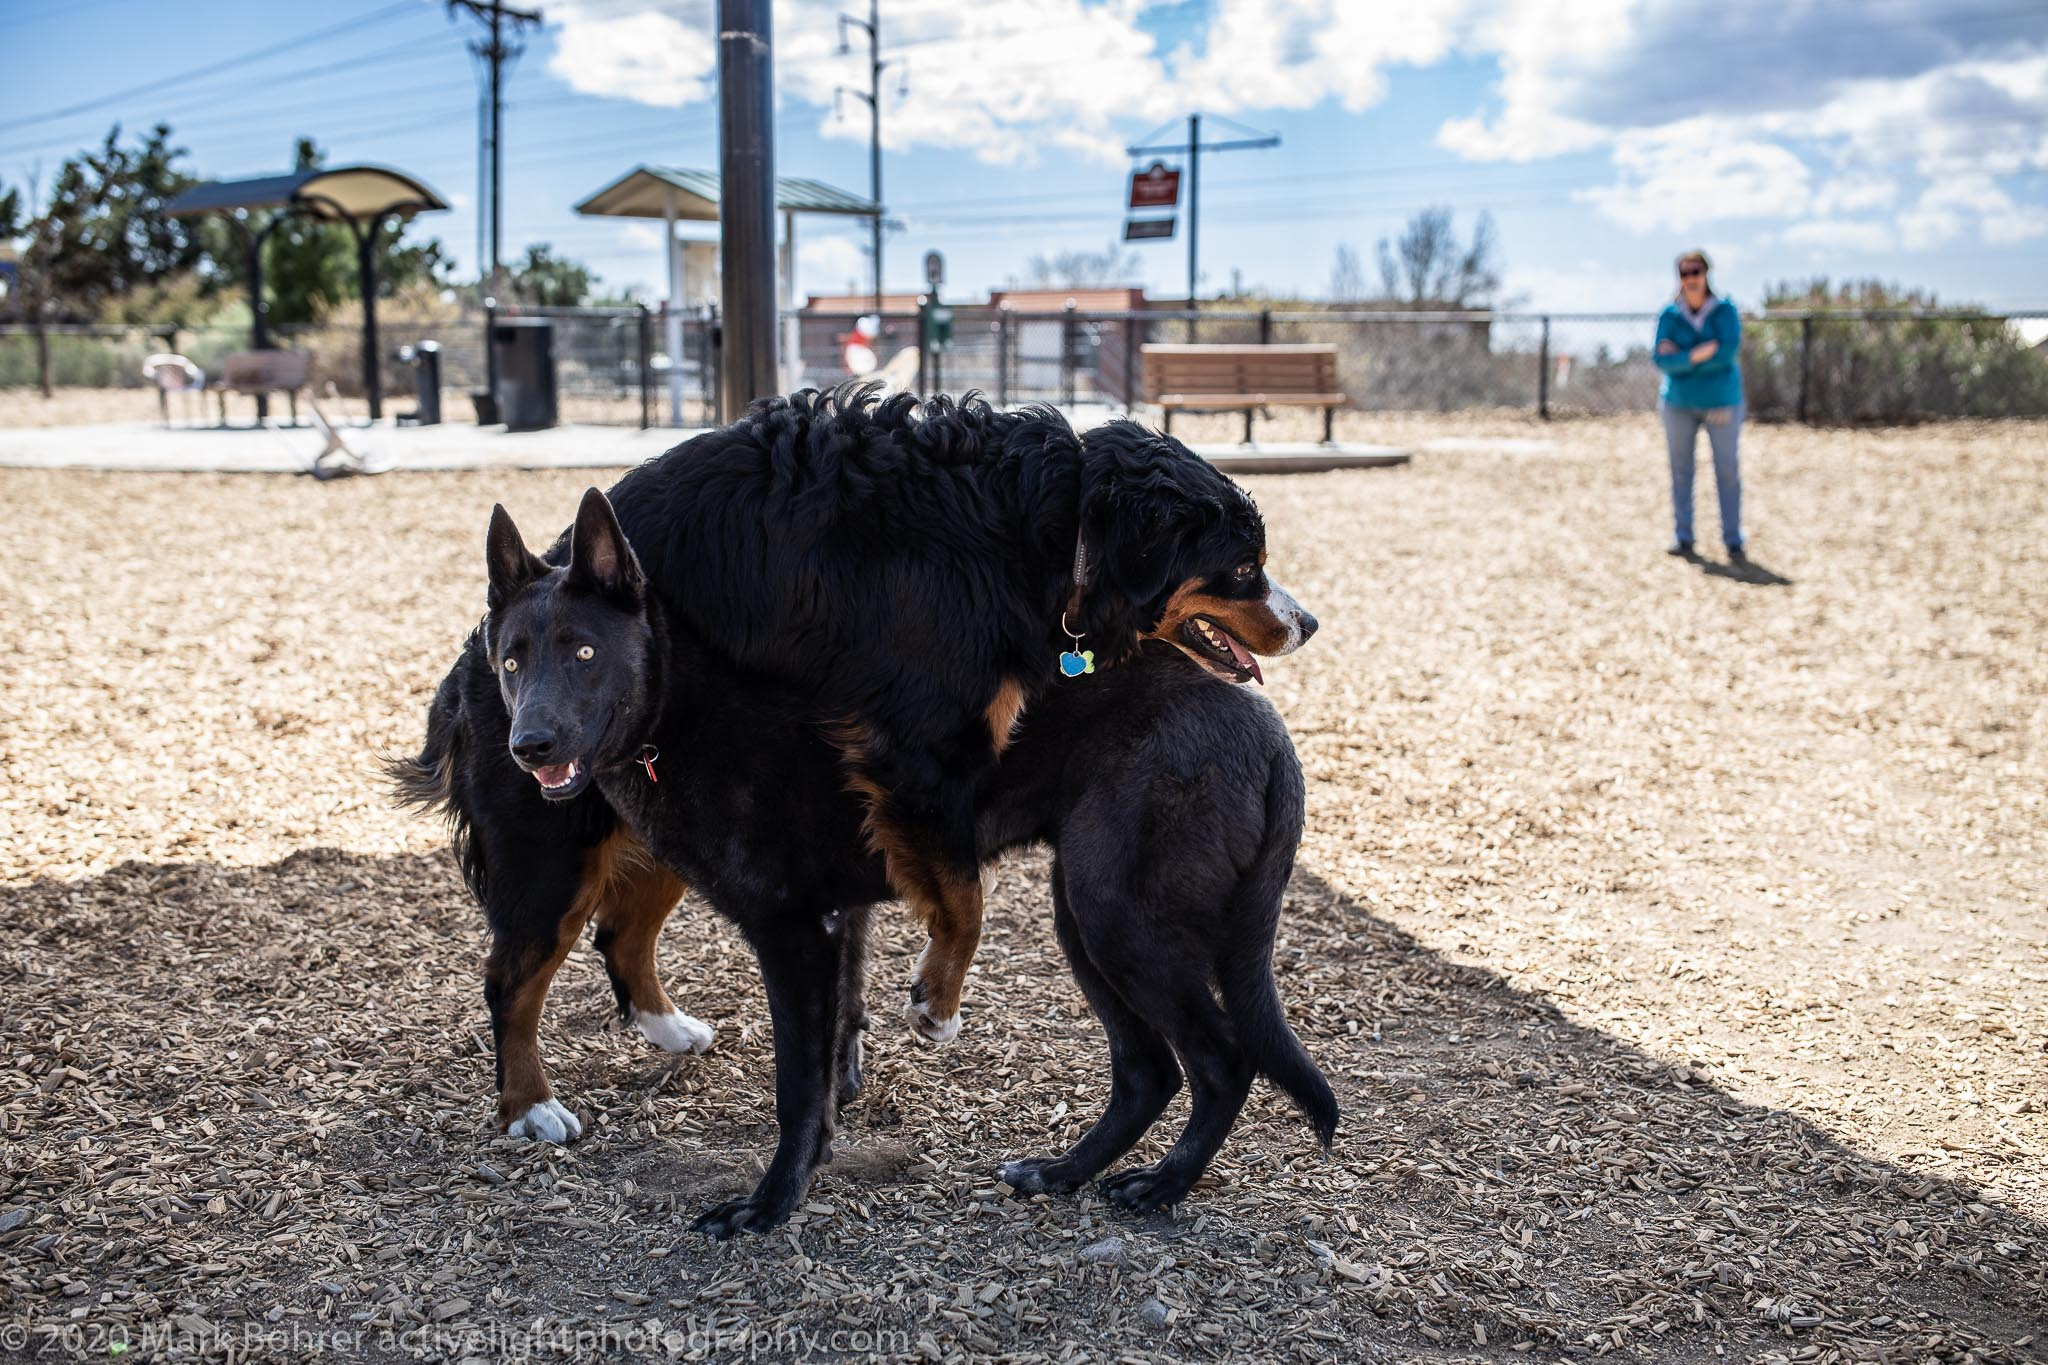 Social distancing at the dog park